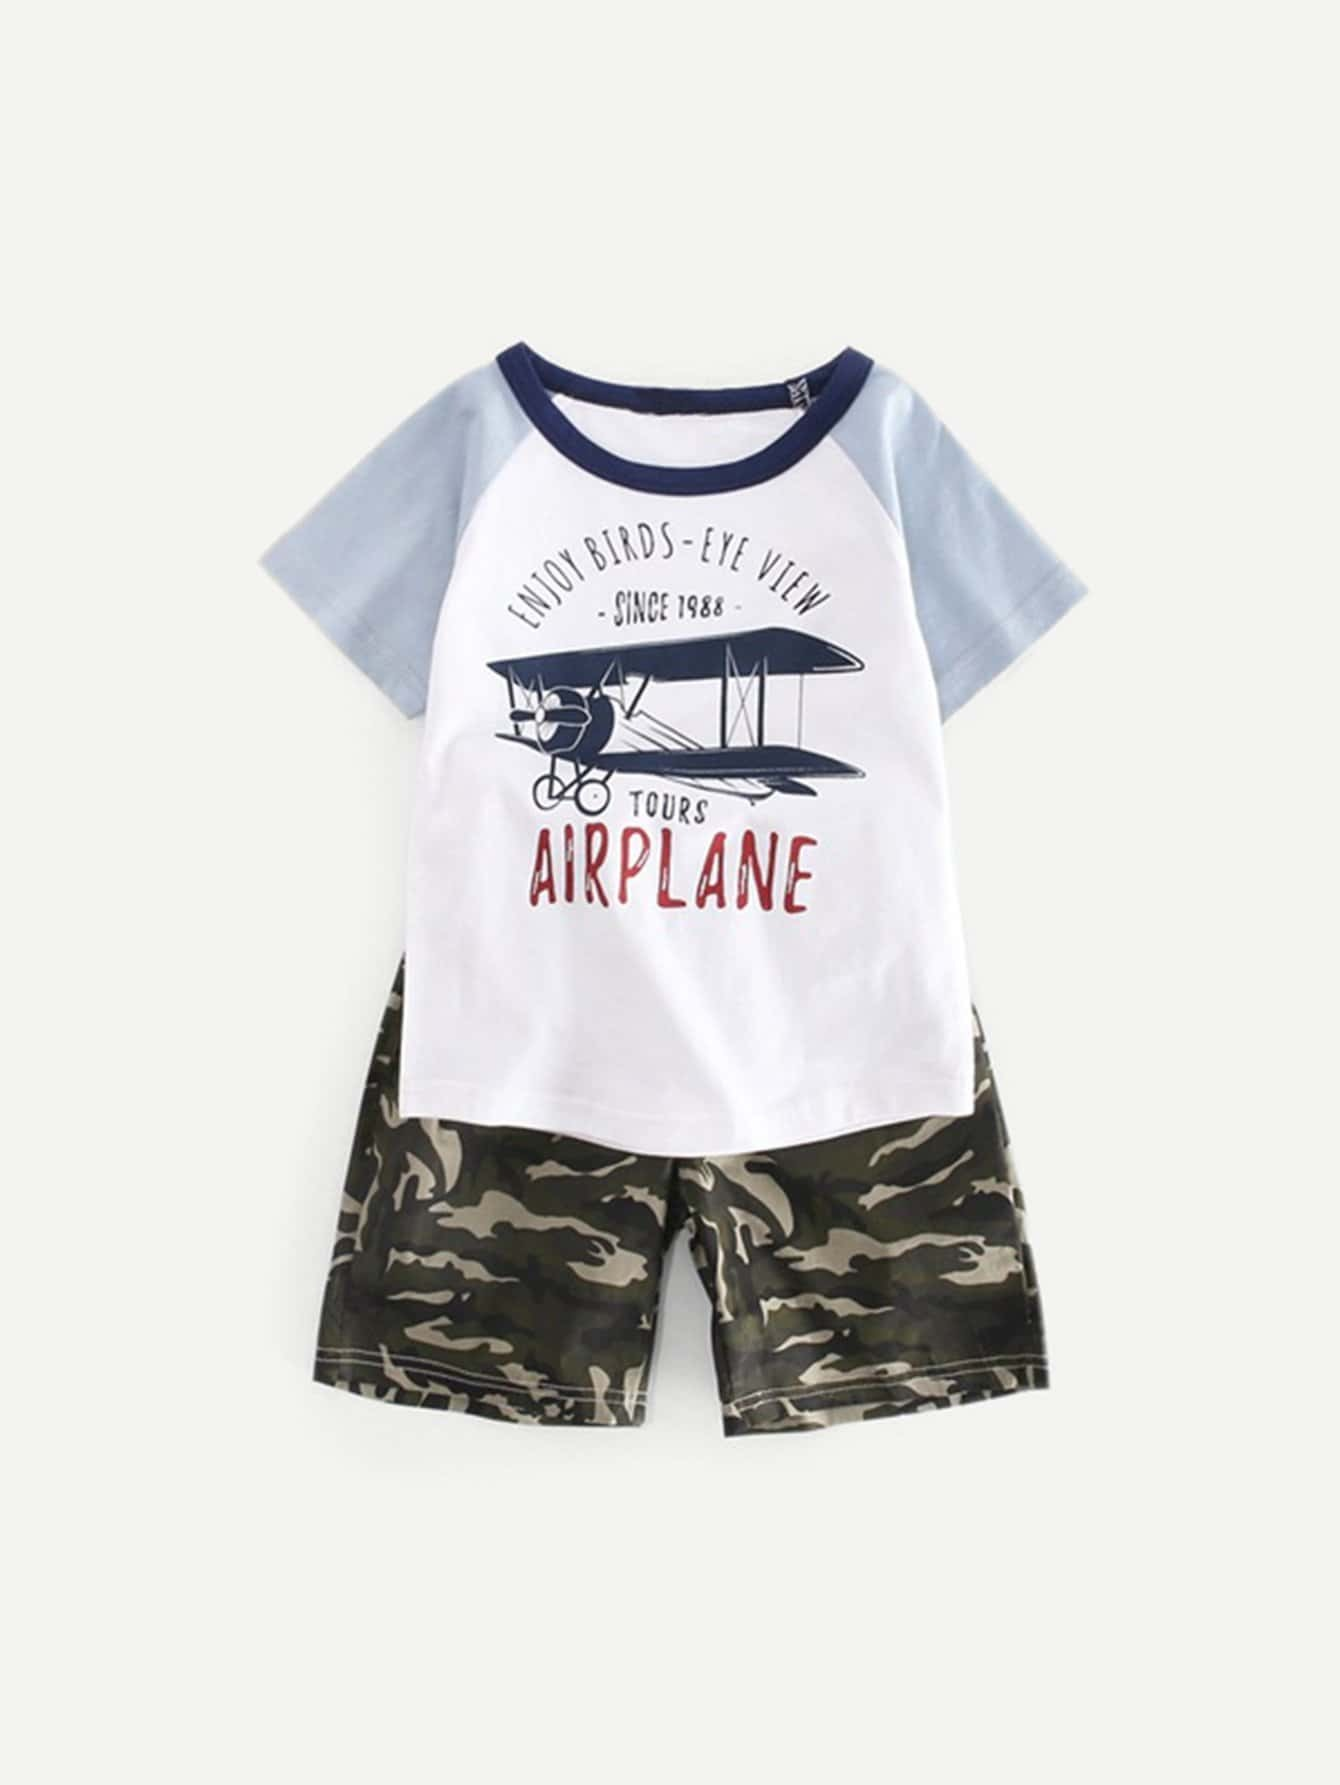 Kids Letter Print Tee With Camo Shorts dinosaur print tee with shorts